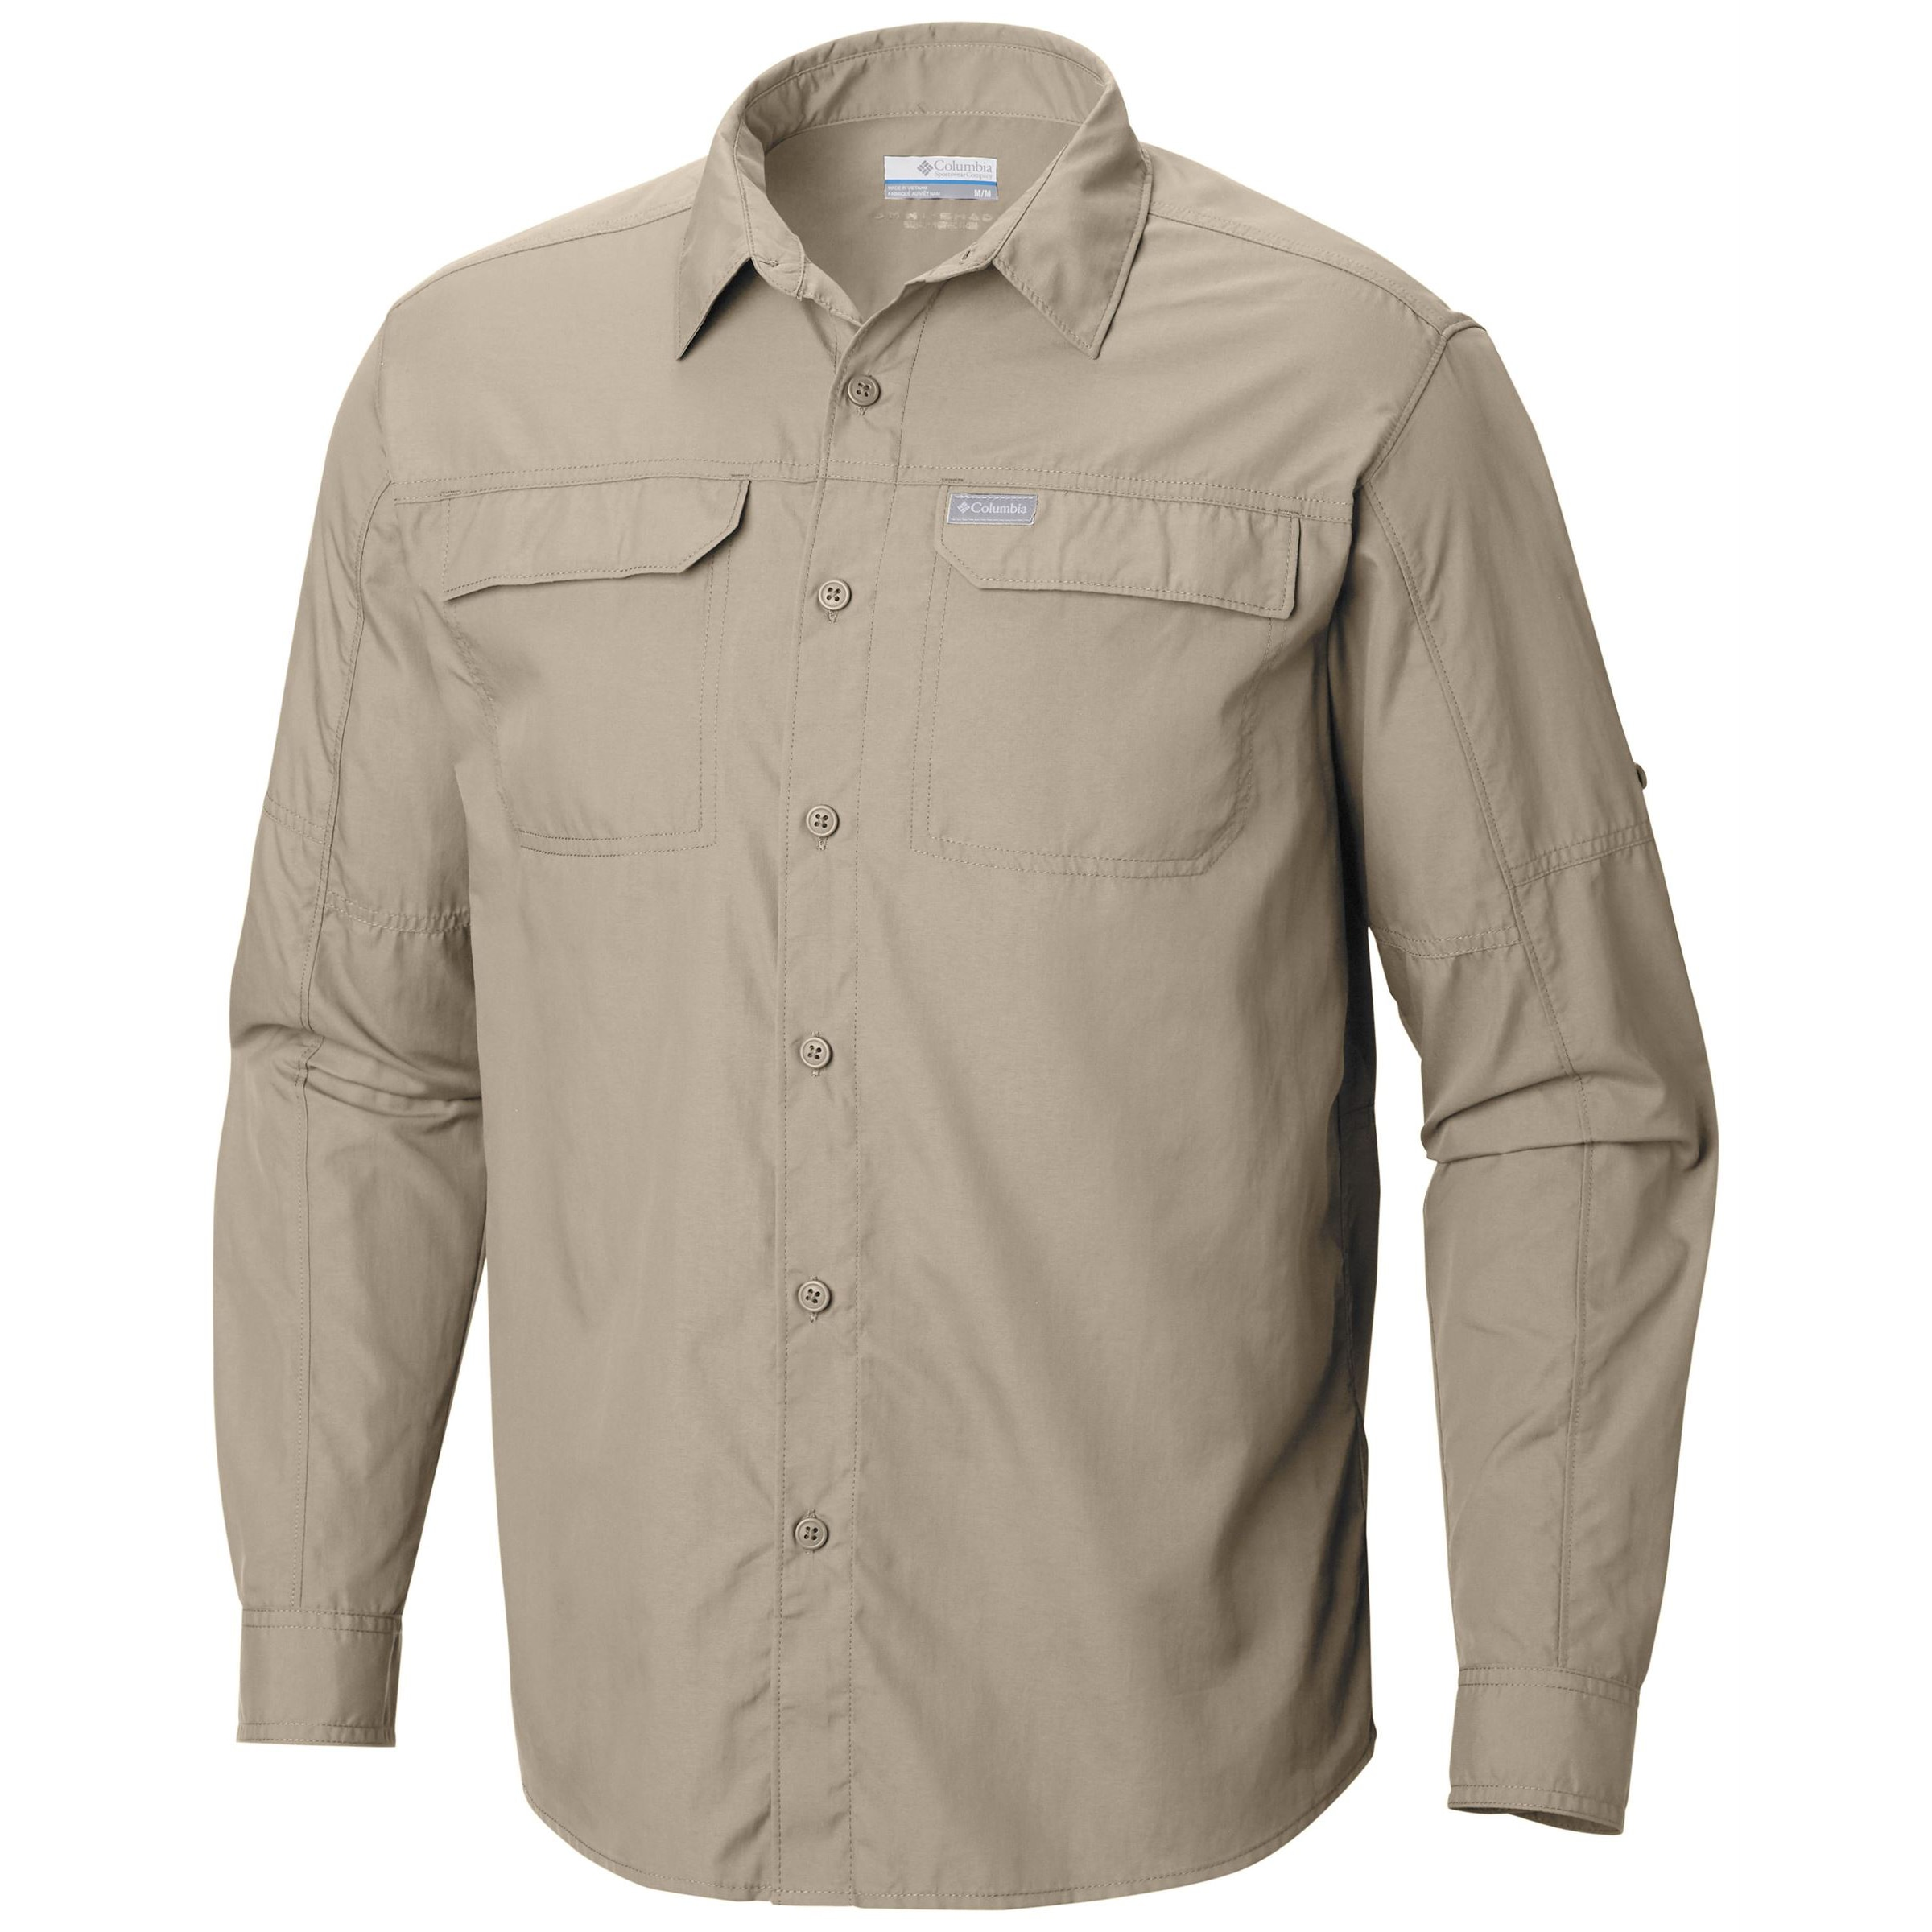 Silver Ridge 2.0 Shirt Long Sleeve - Men's